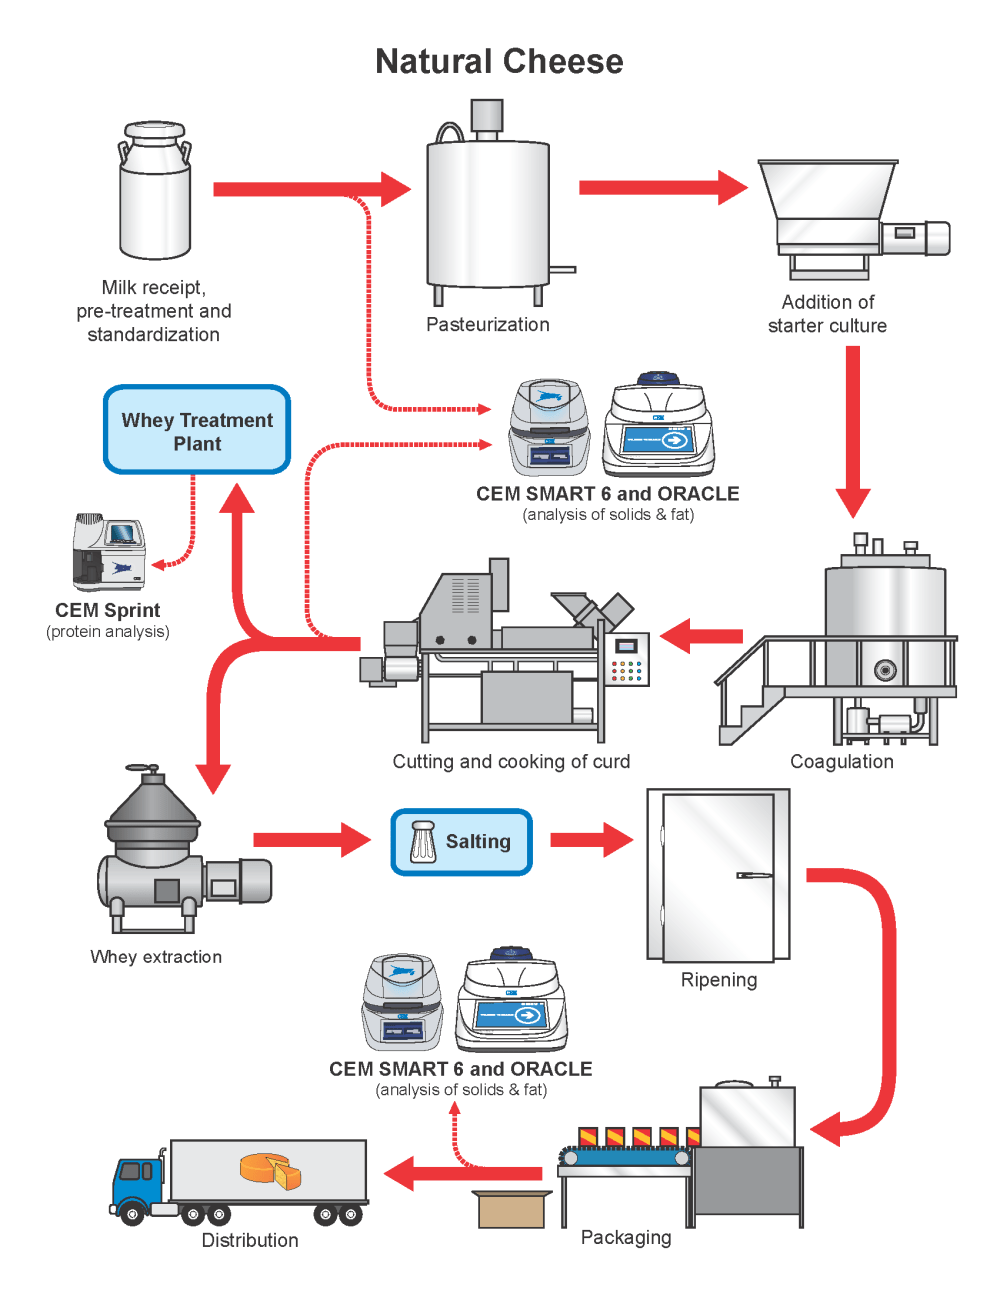 medium resolution of the natural cheese flow chart gives precise details on the production process of natural cheese as well as an explanation of where cem process products can